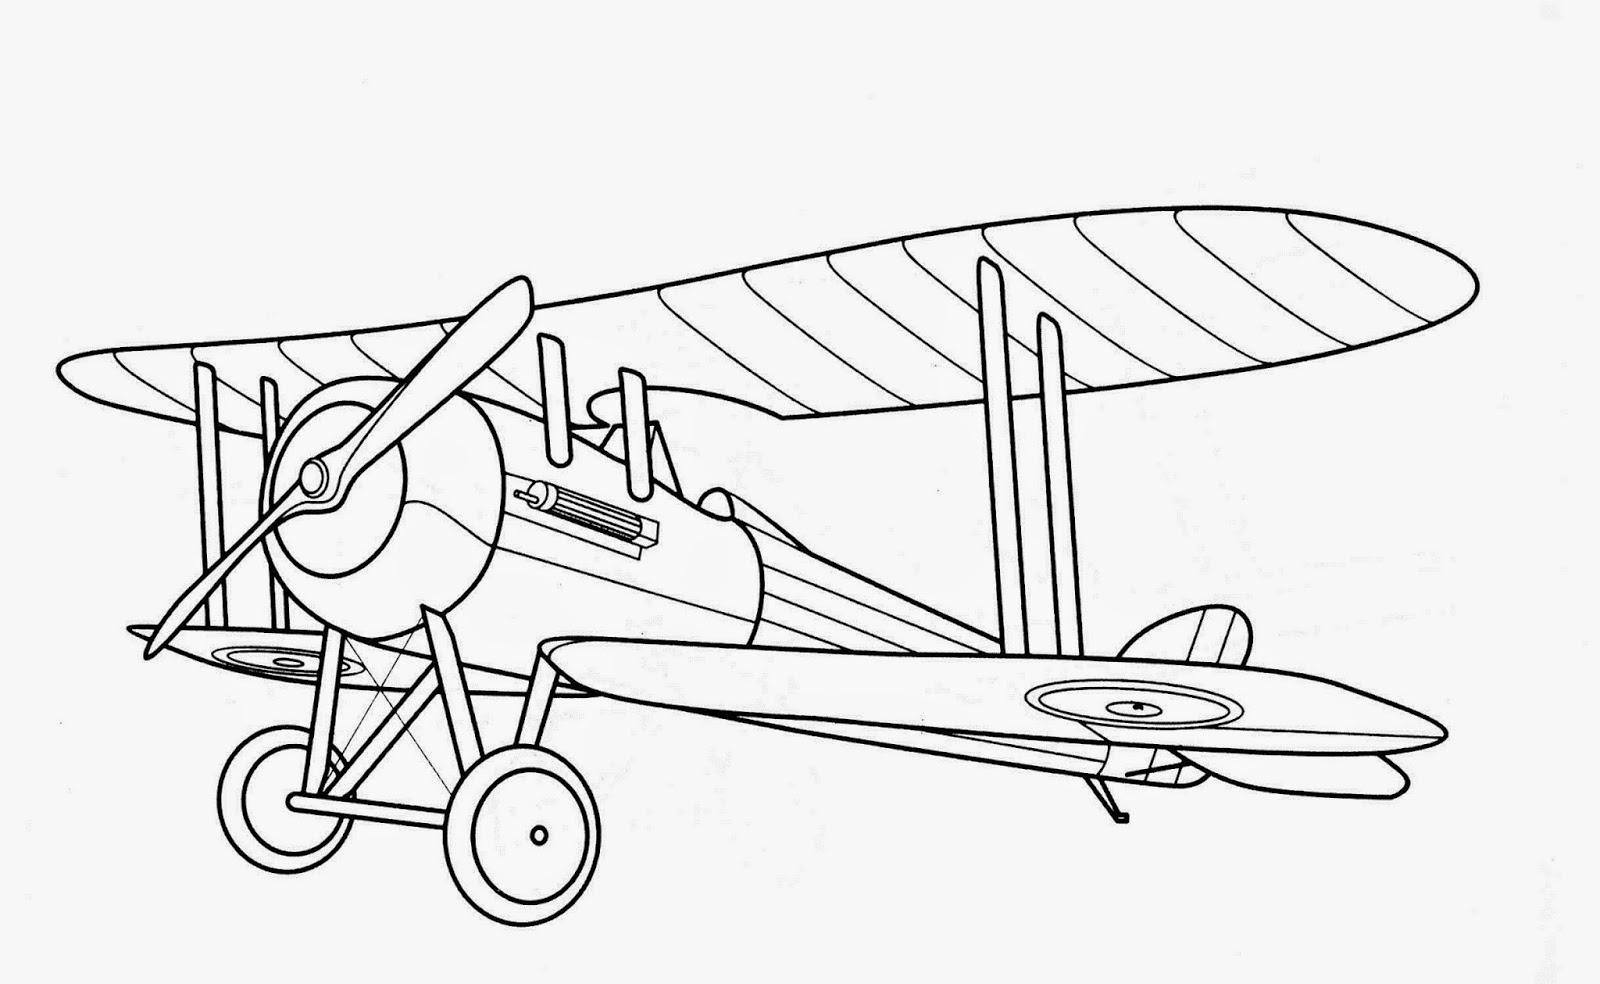 Colour drawing free wallpaper disney planes coloring for Coloring pages of airplanes